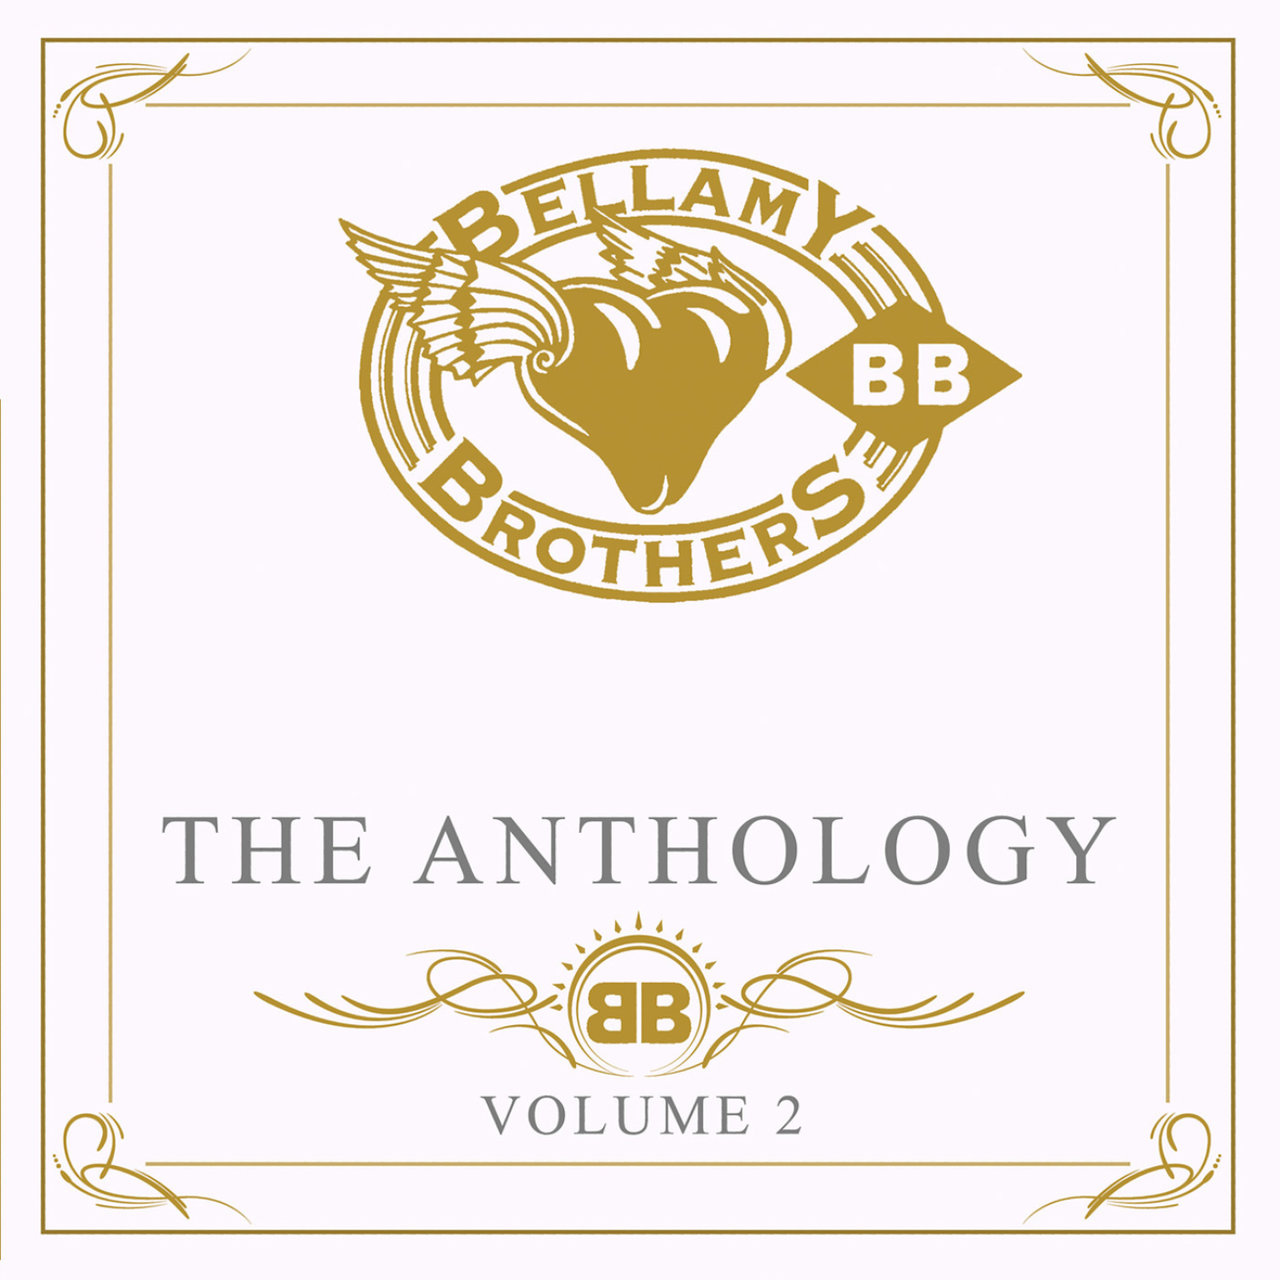 The Anthology Volume 2